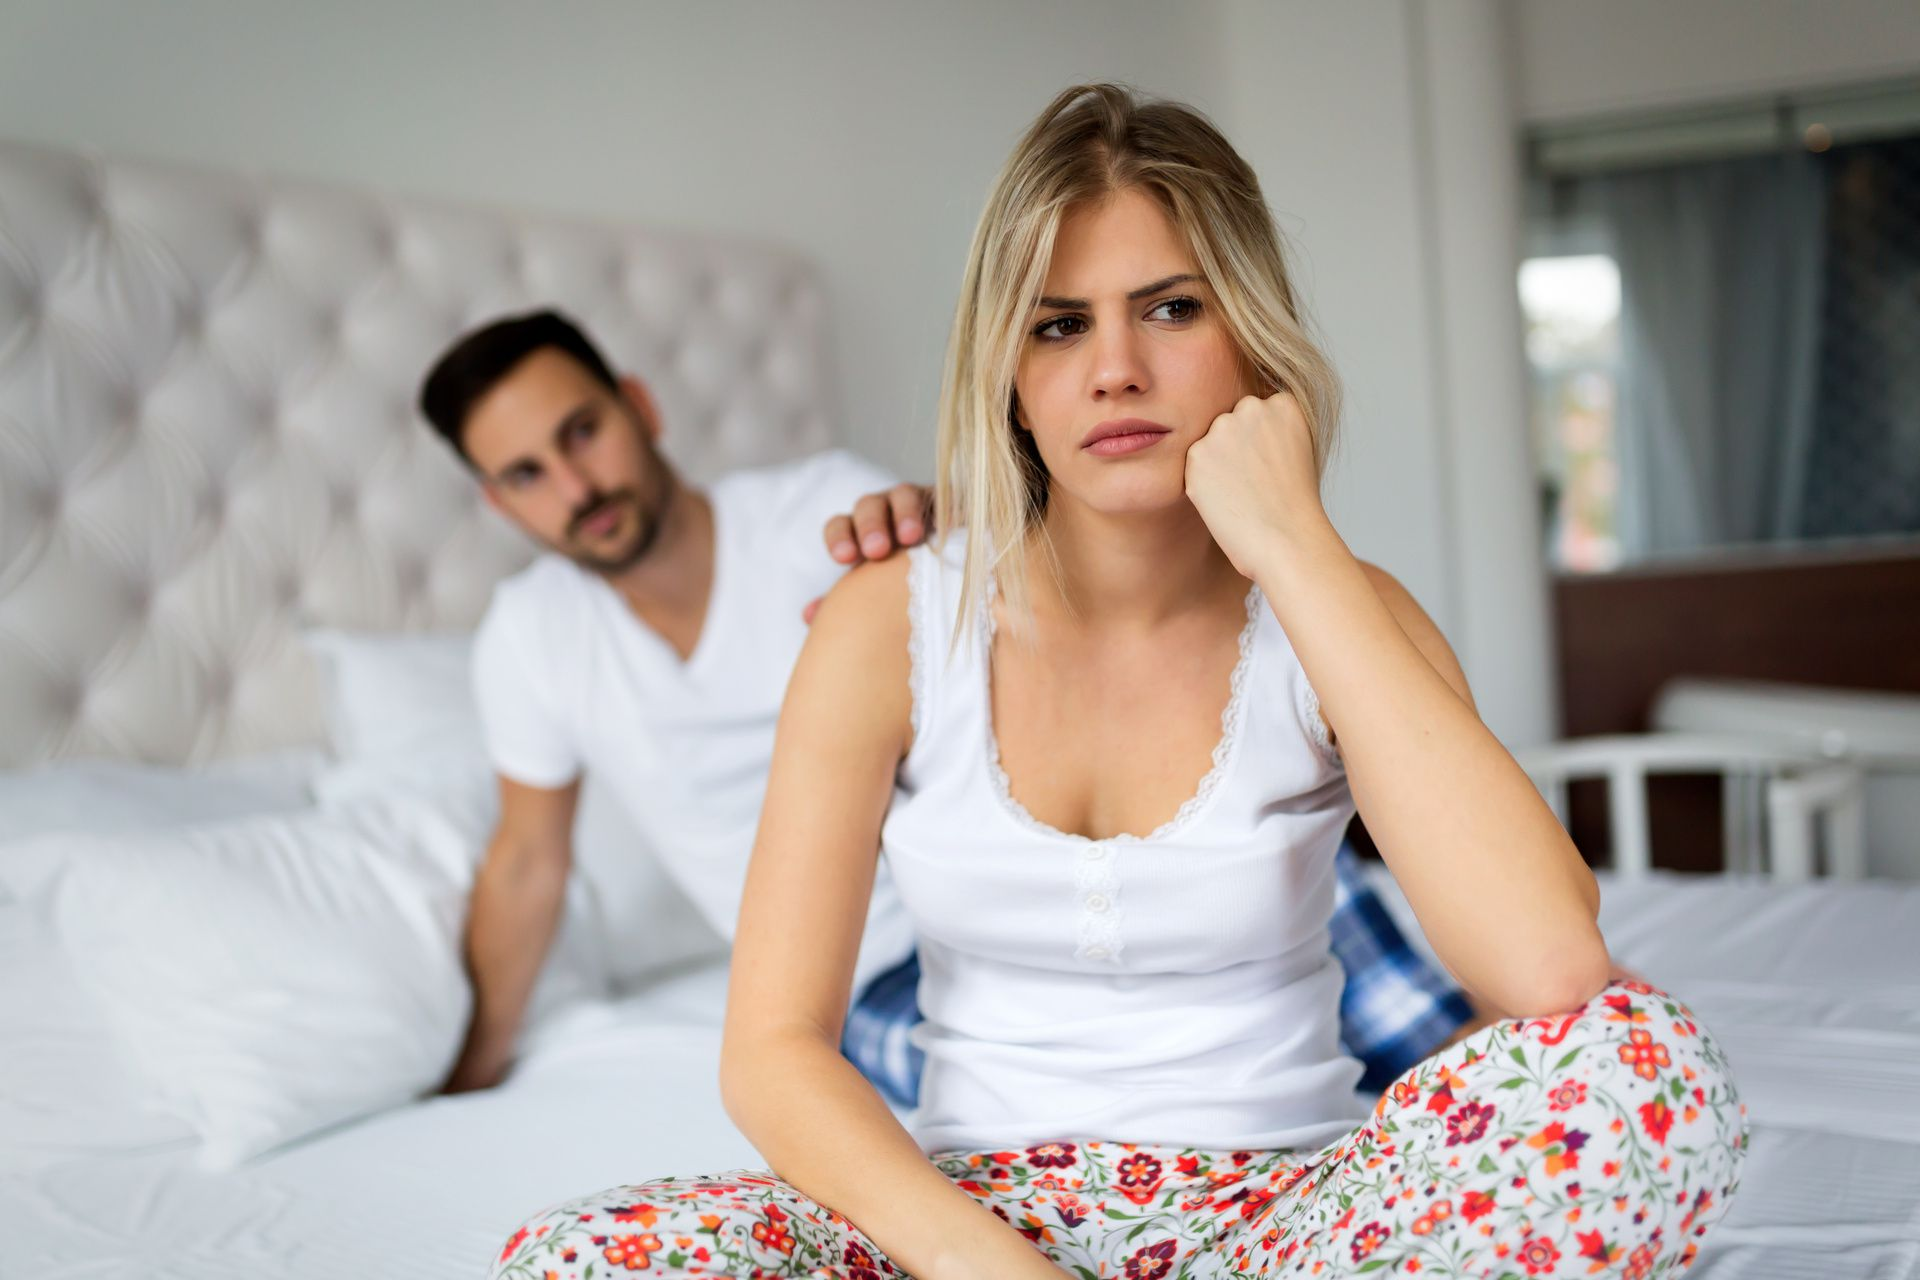 Women cheat what their husbands of percentage on married 7 out